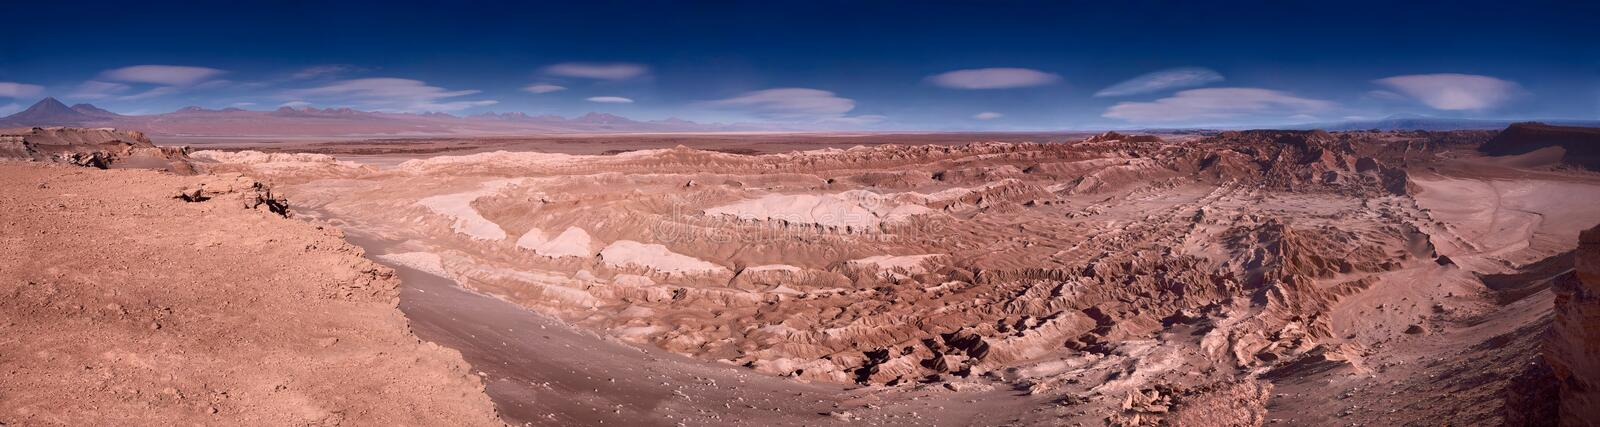 Panoramic view of the Valle de la Luna, Chile royalty free stock images